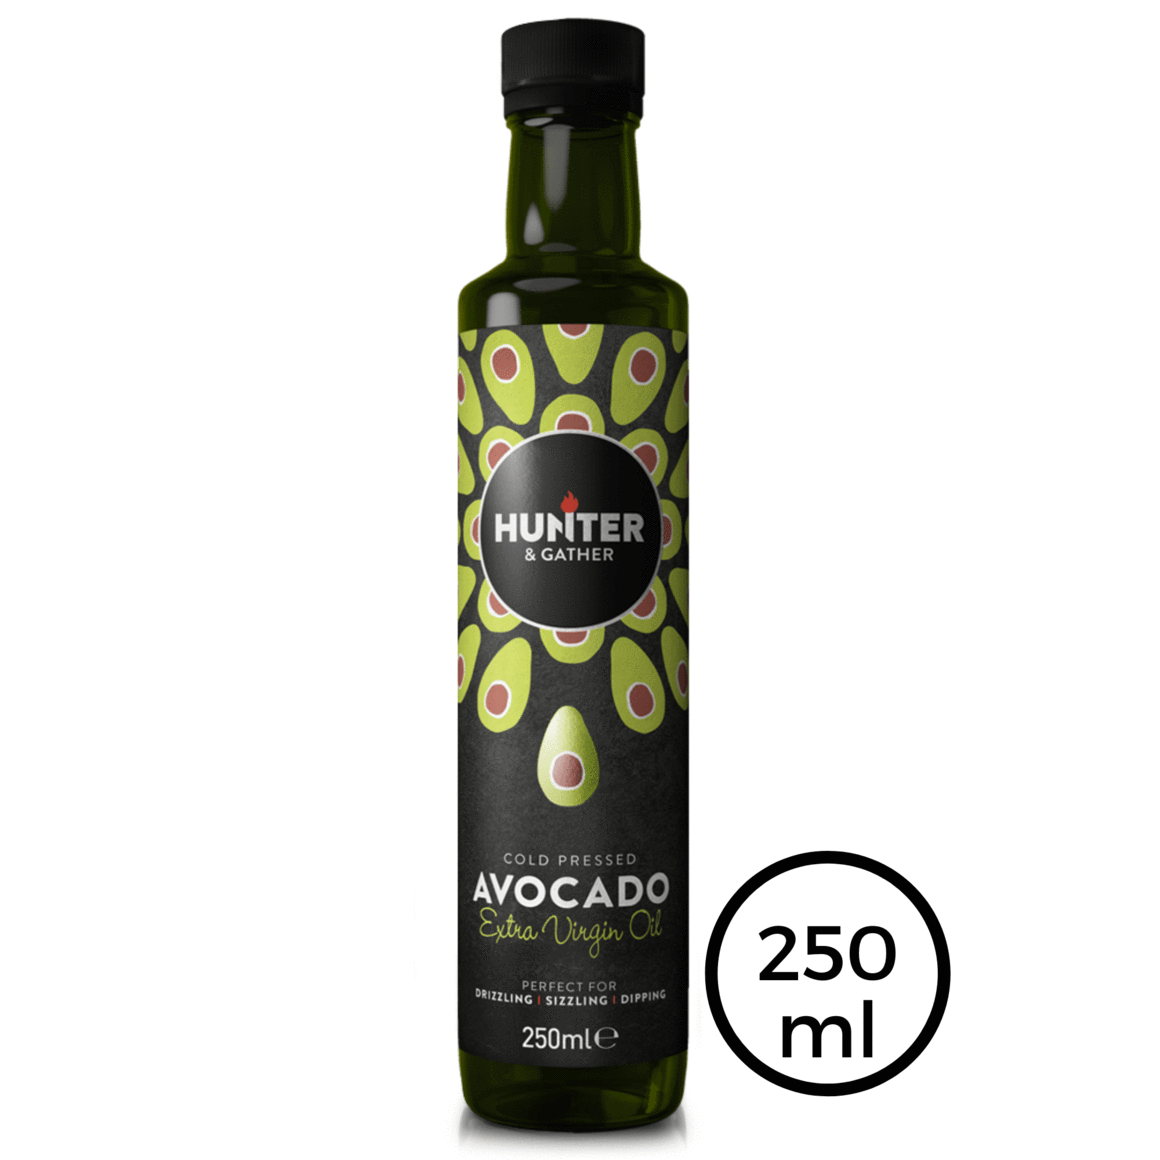 Cold Pressed Extra Virgin Avocado Oil - 250ml